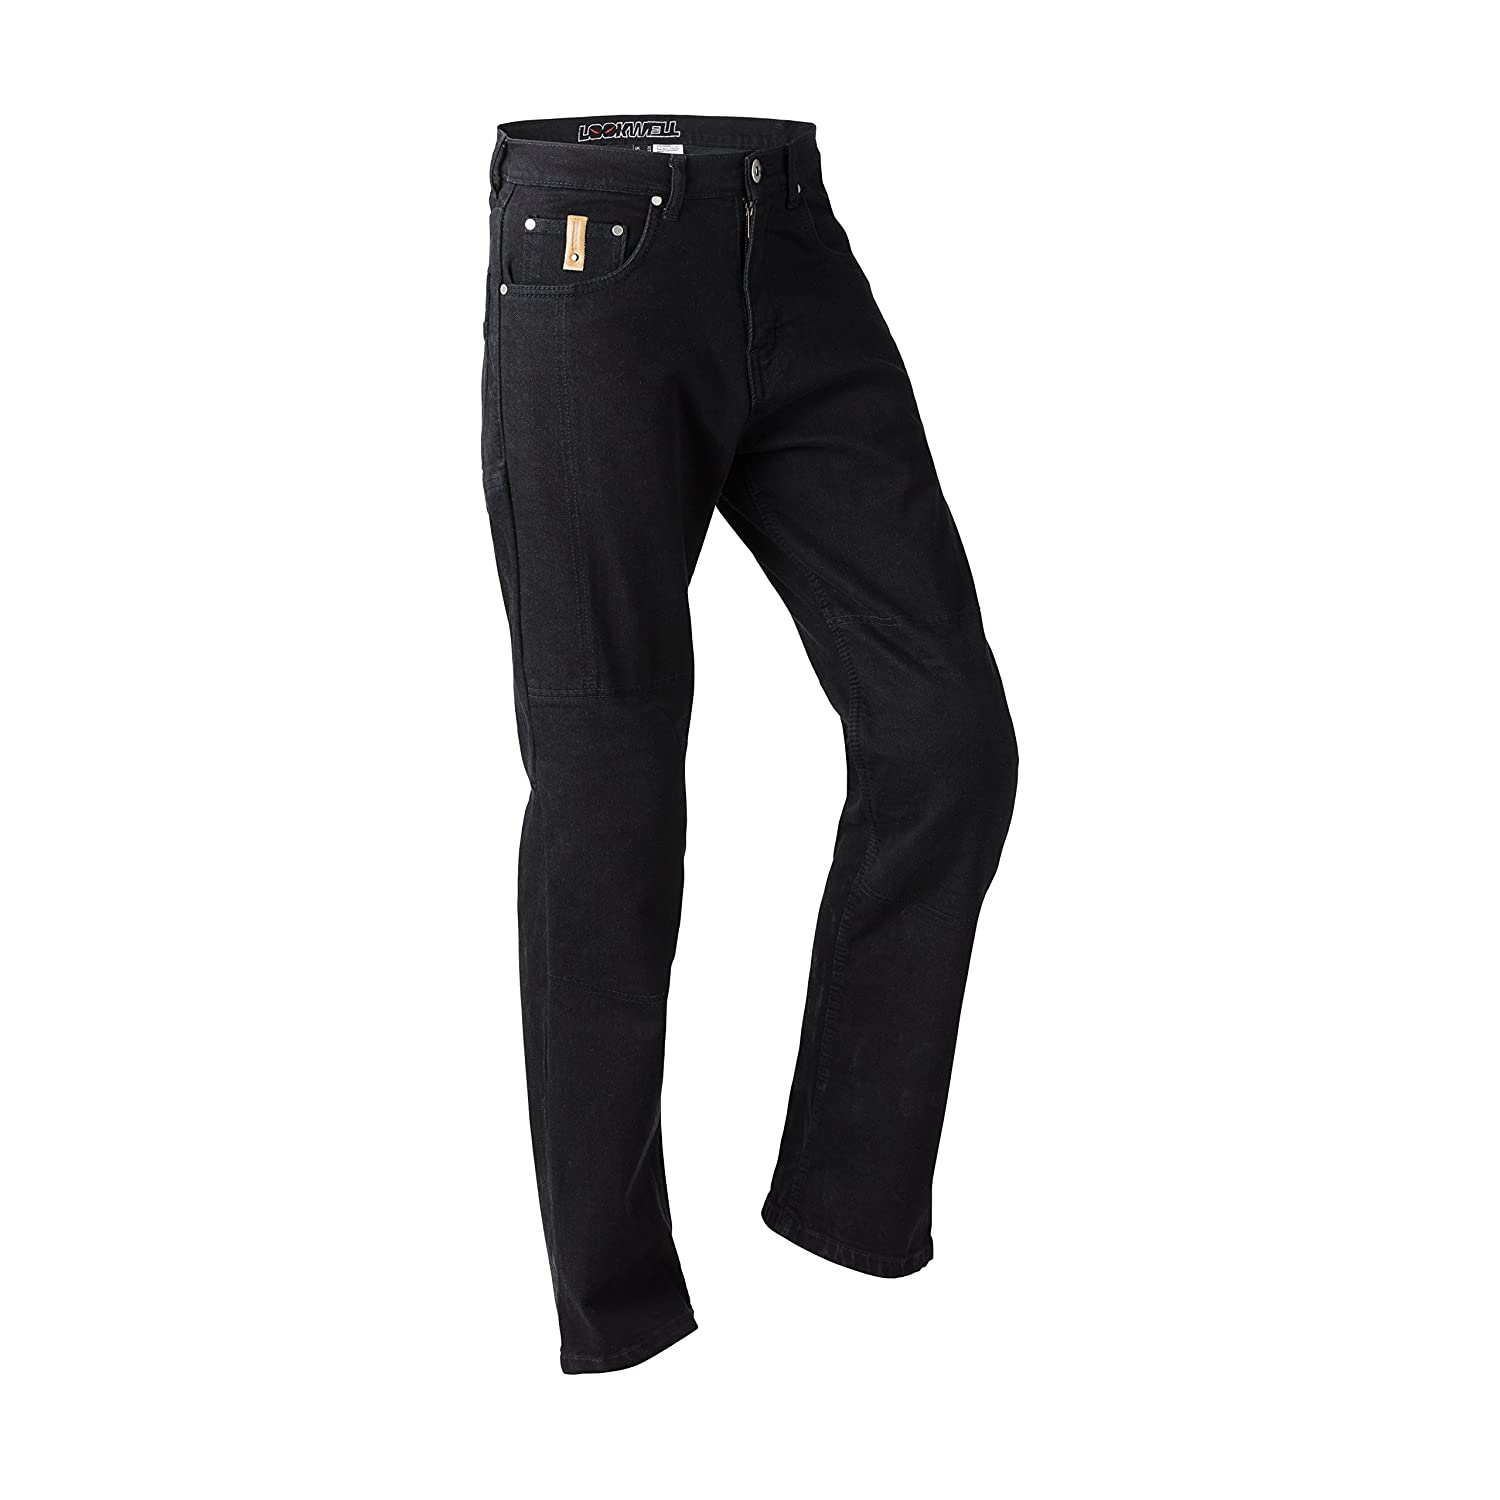 28-46 Regular, Short /& Long Long Leg Black Size 36 Lookwell Jona Kevlar Jeans Mens Motorcycle and Motorbike Pants Armoured CE-Approved Stretch